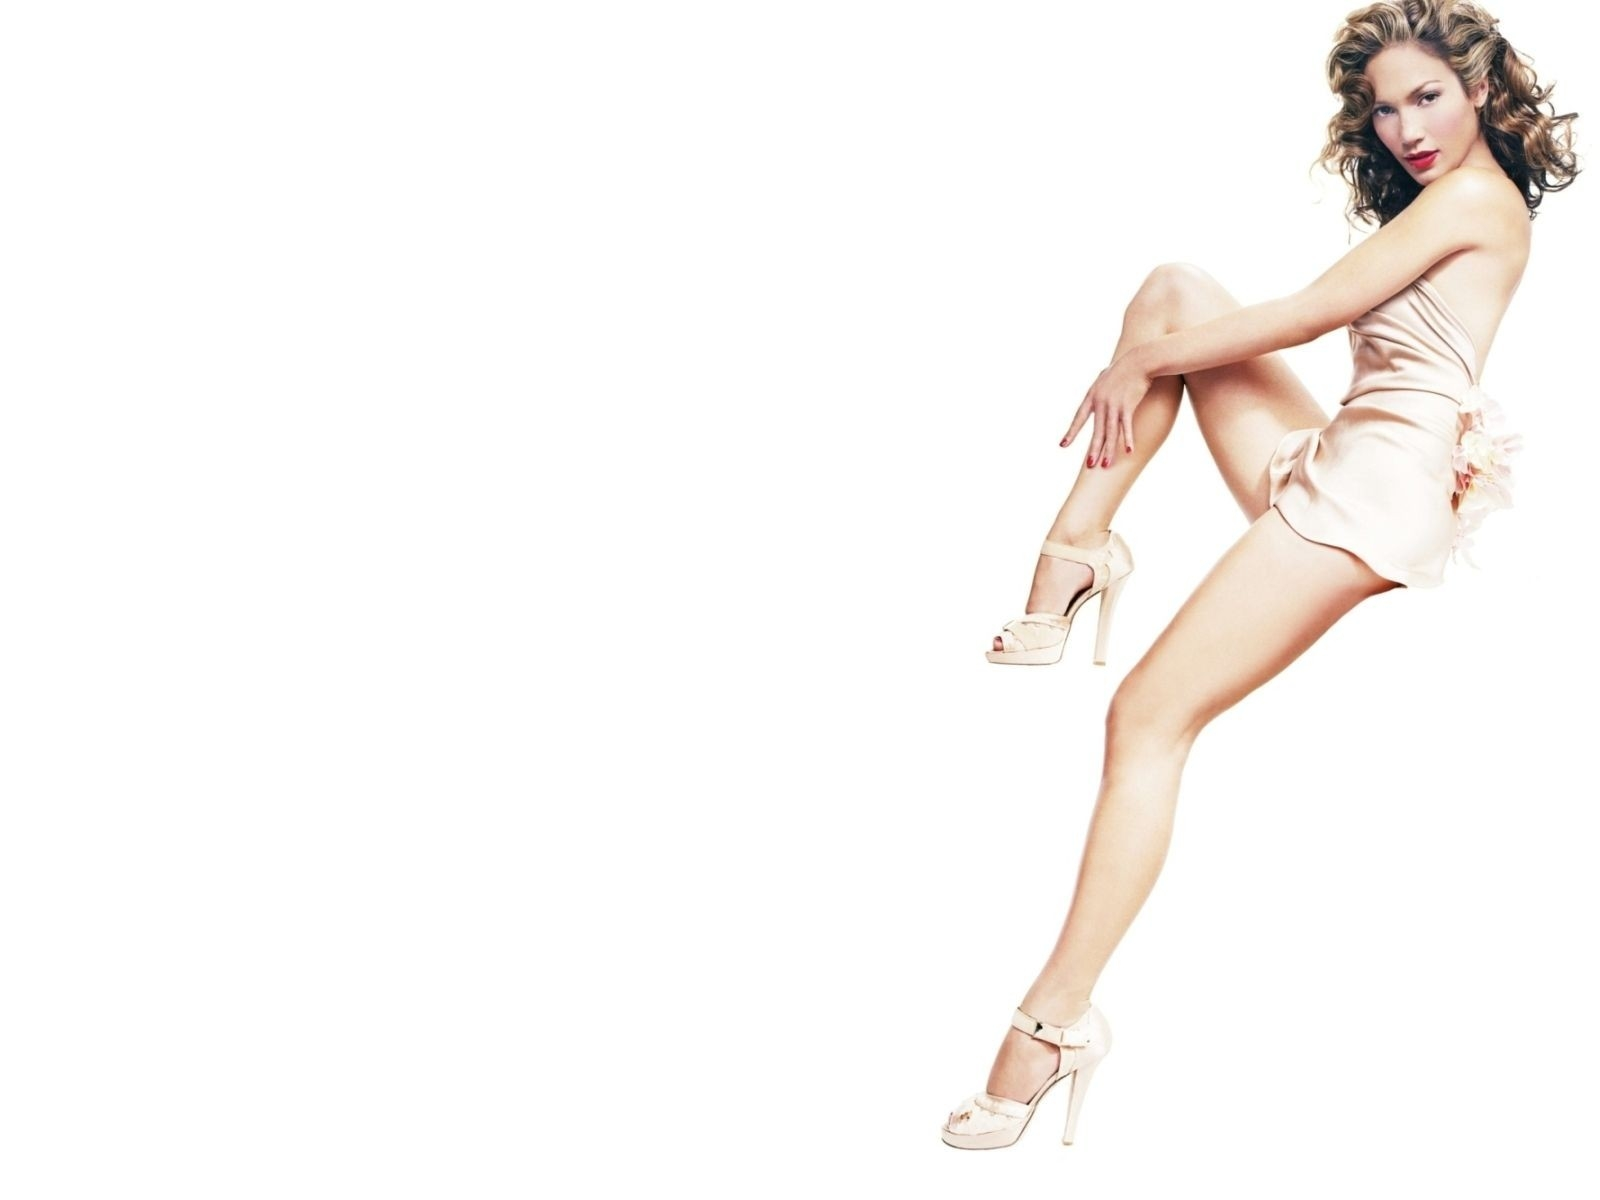 Wallpaper di Jennifer Lopez in versione pin up